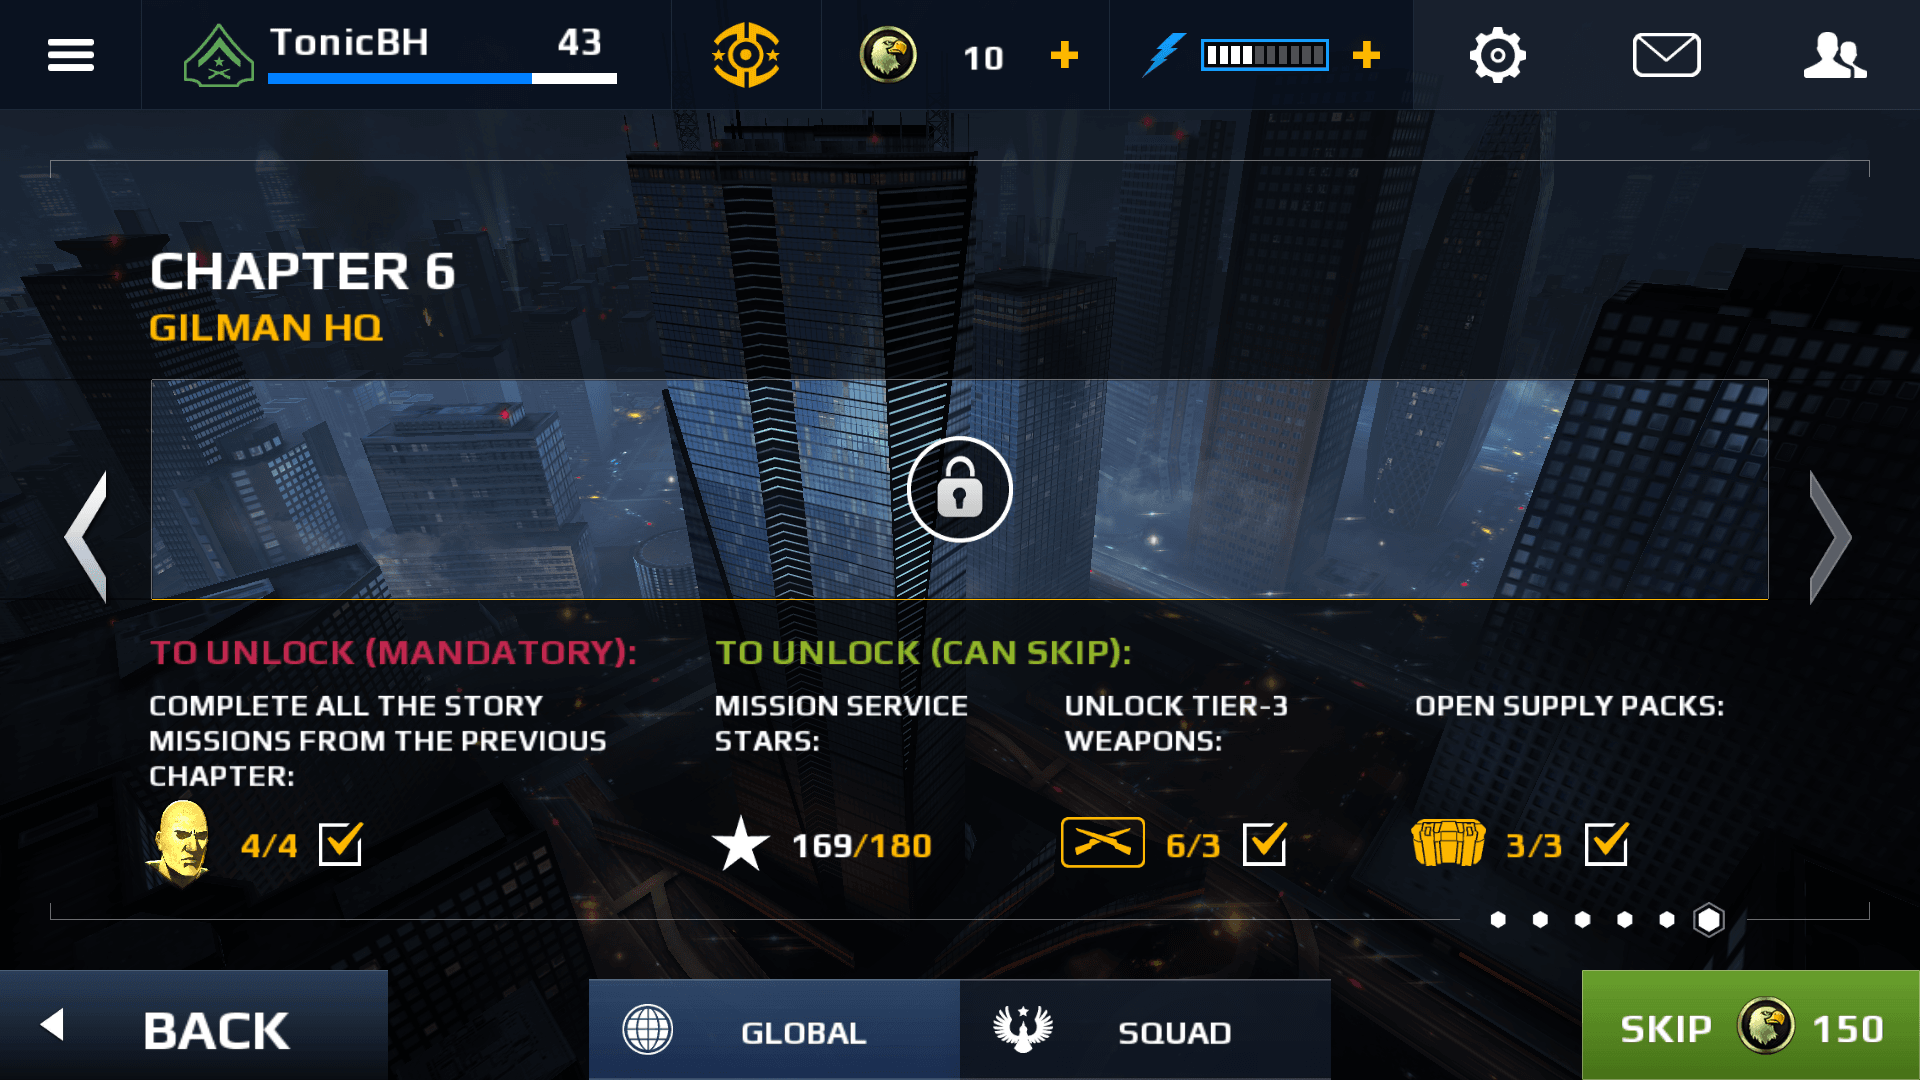 Get used to seeing this, unless you wanna pony up the cash, or grind the same missions repeatedly.